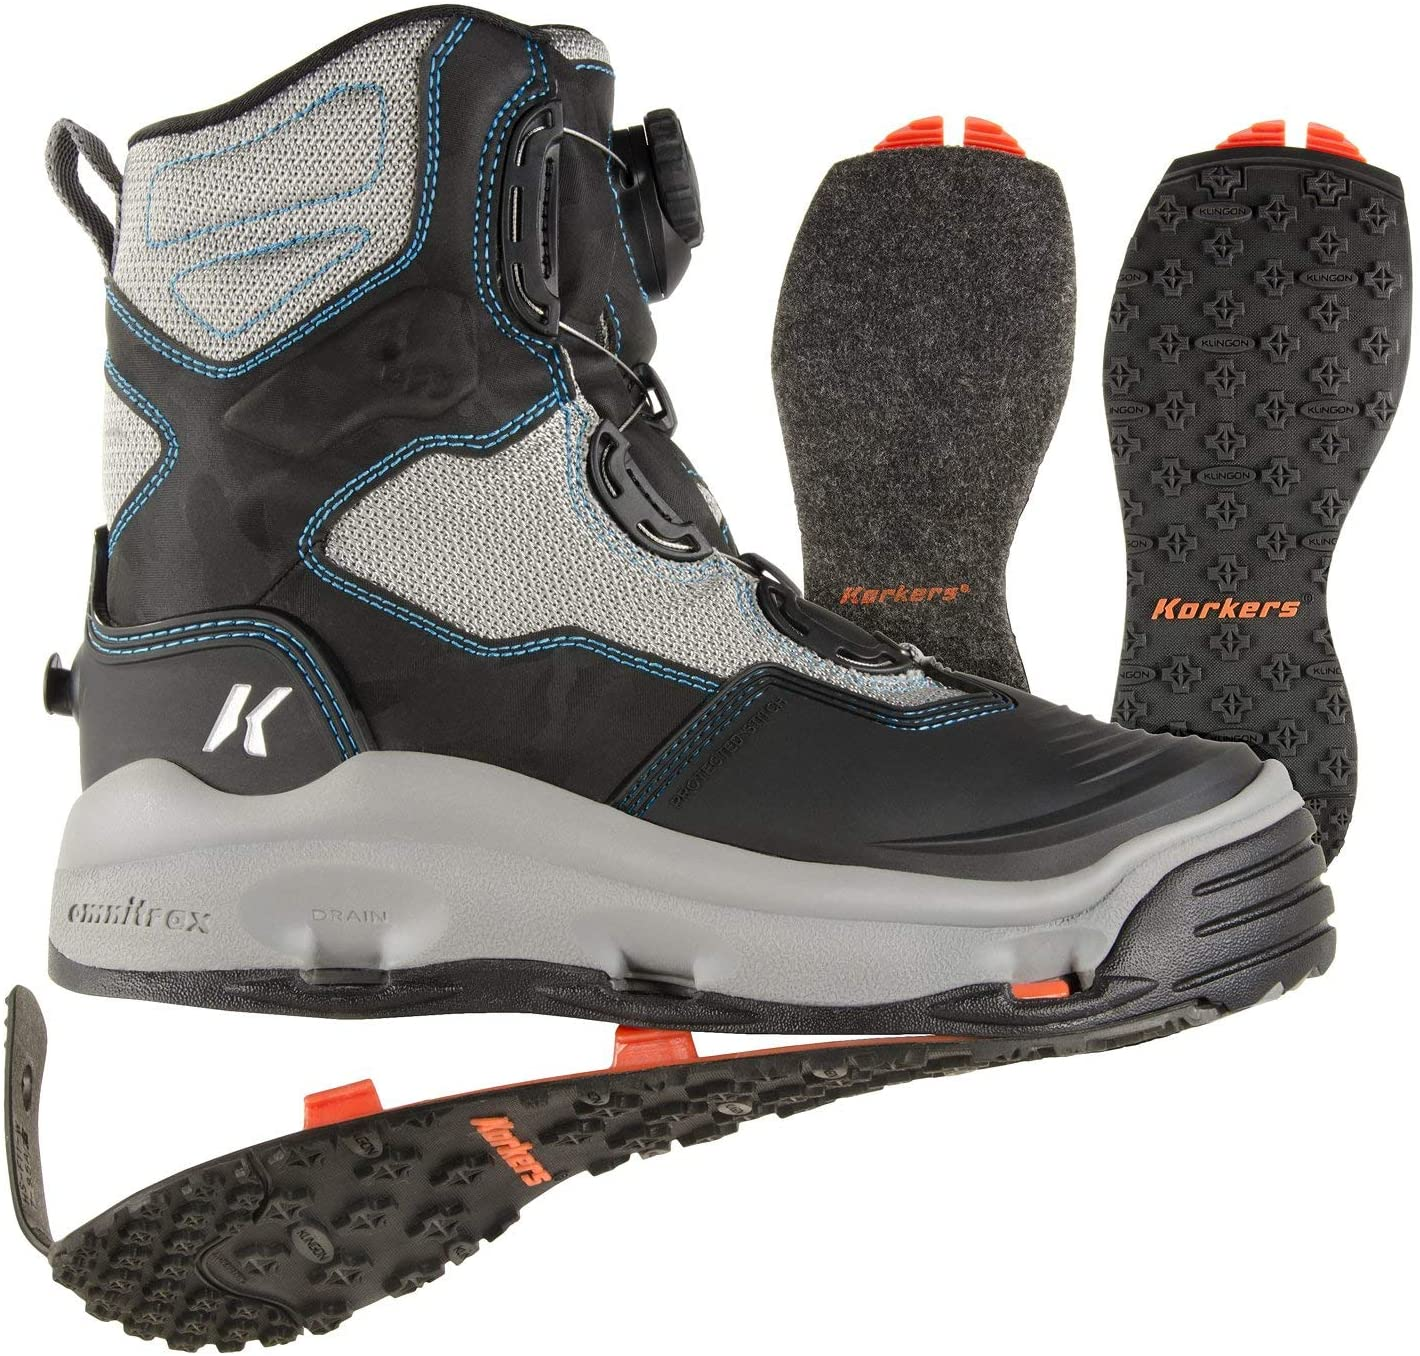 Korkers Women Boots- Best Hiking wading Shoes for Women